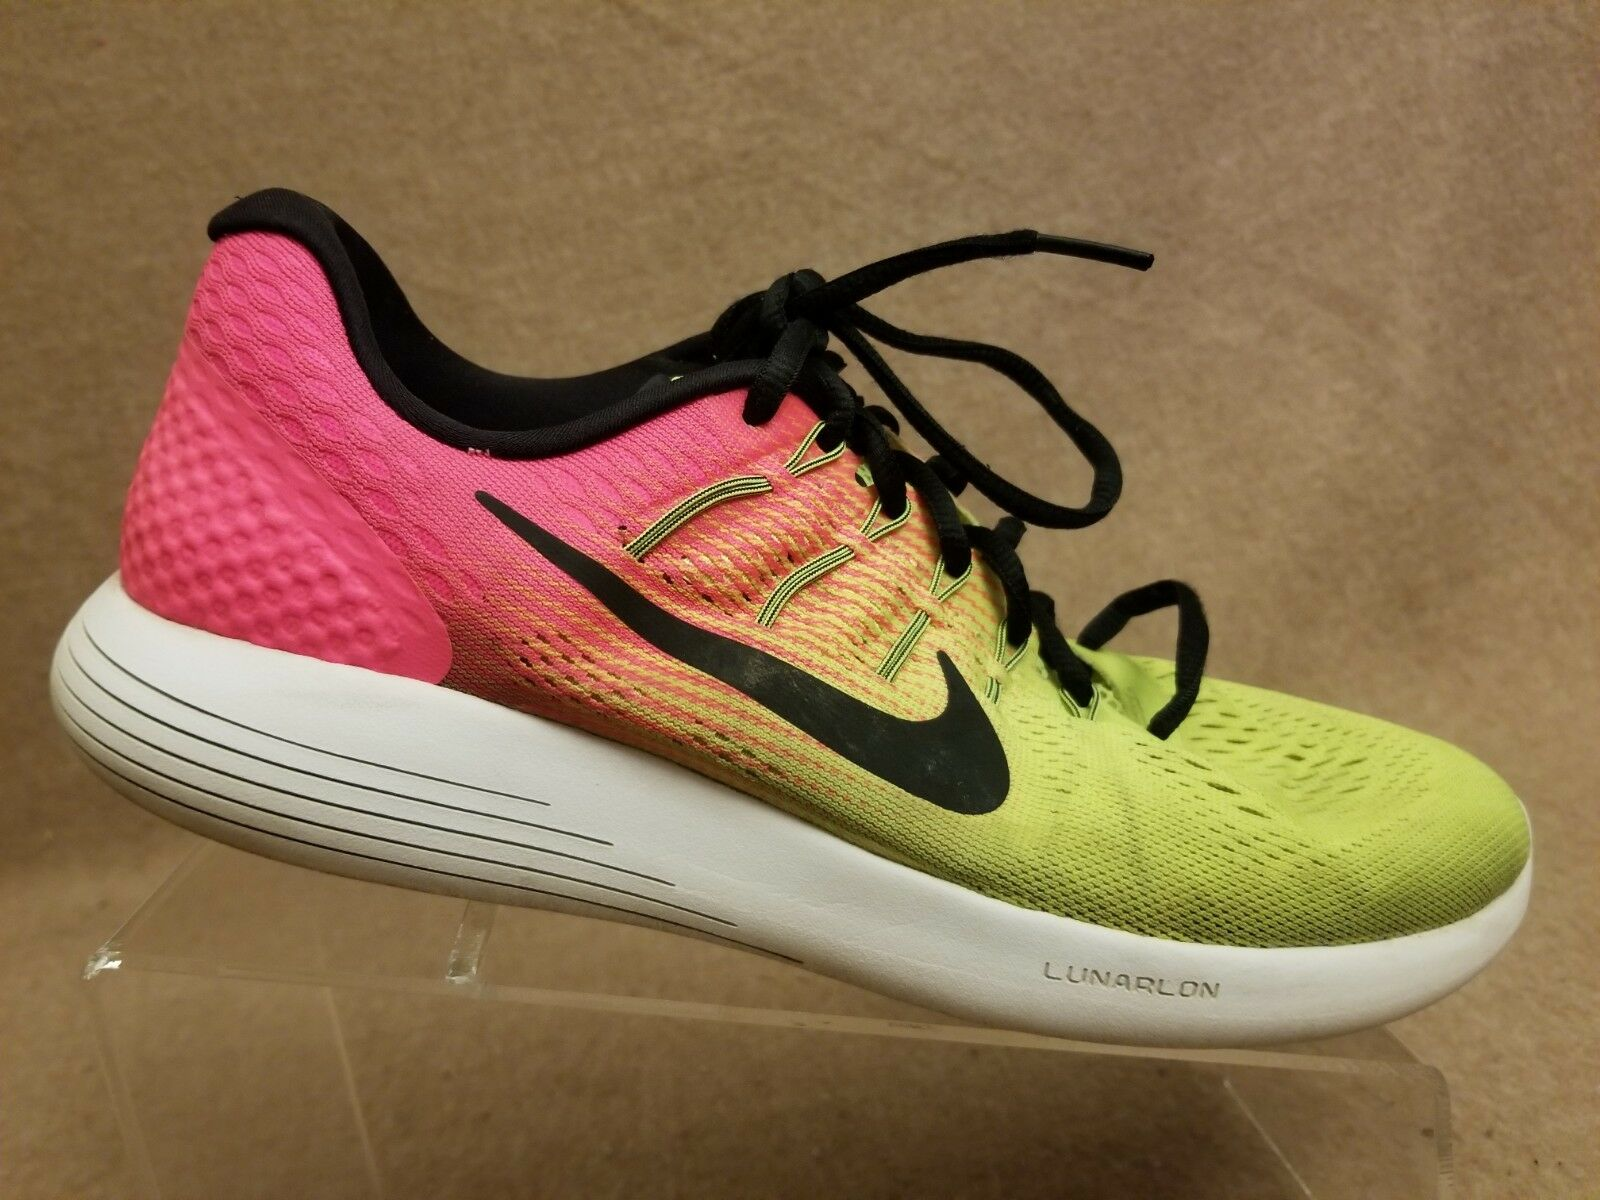 Nike Lunarglide 8 OC 844632 999 Men's Olympic Color Running Sport Shoes Comfortable Seasonal clearance sale